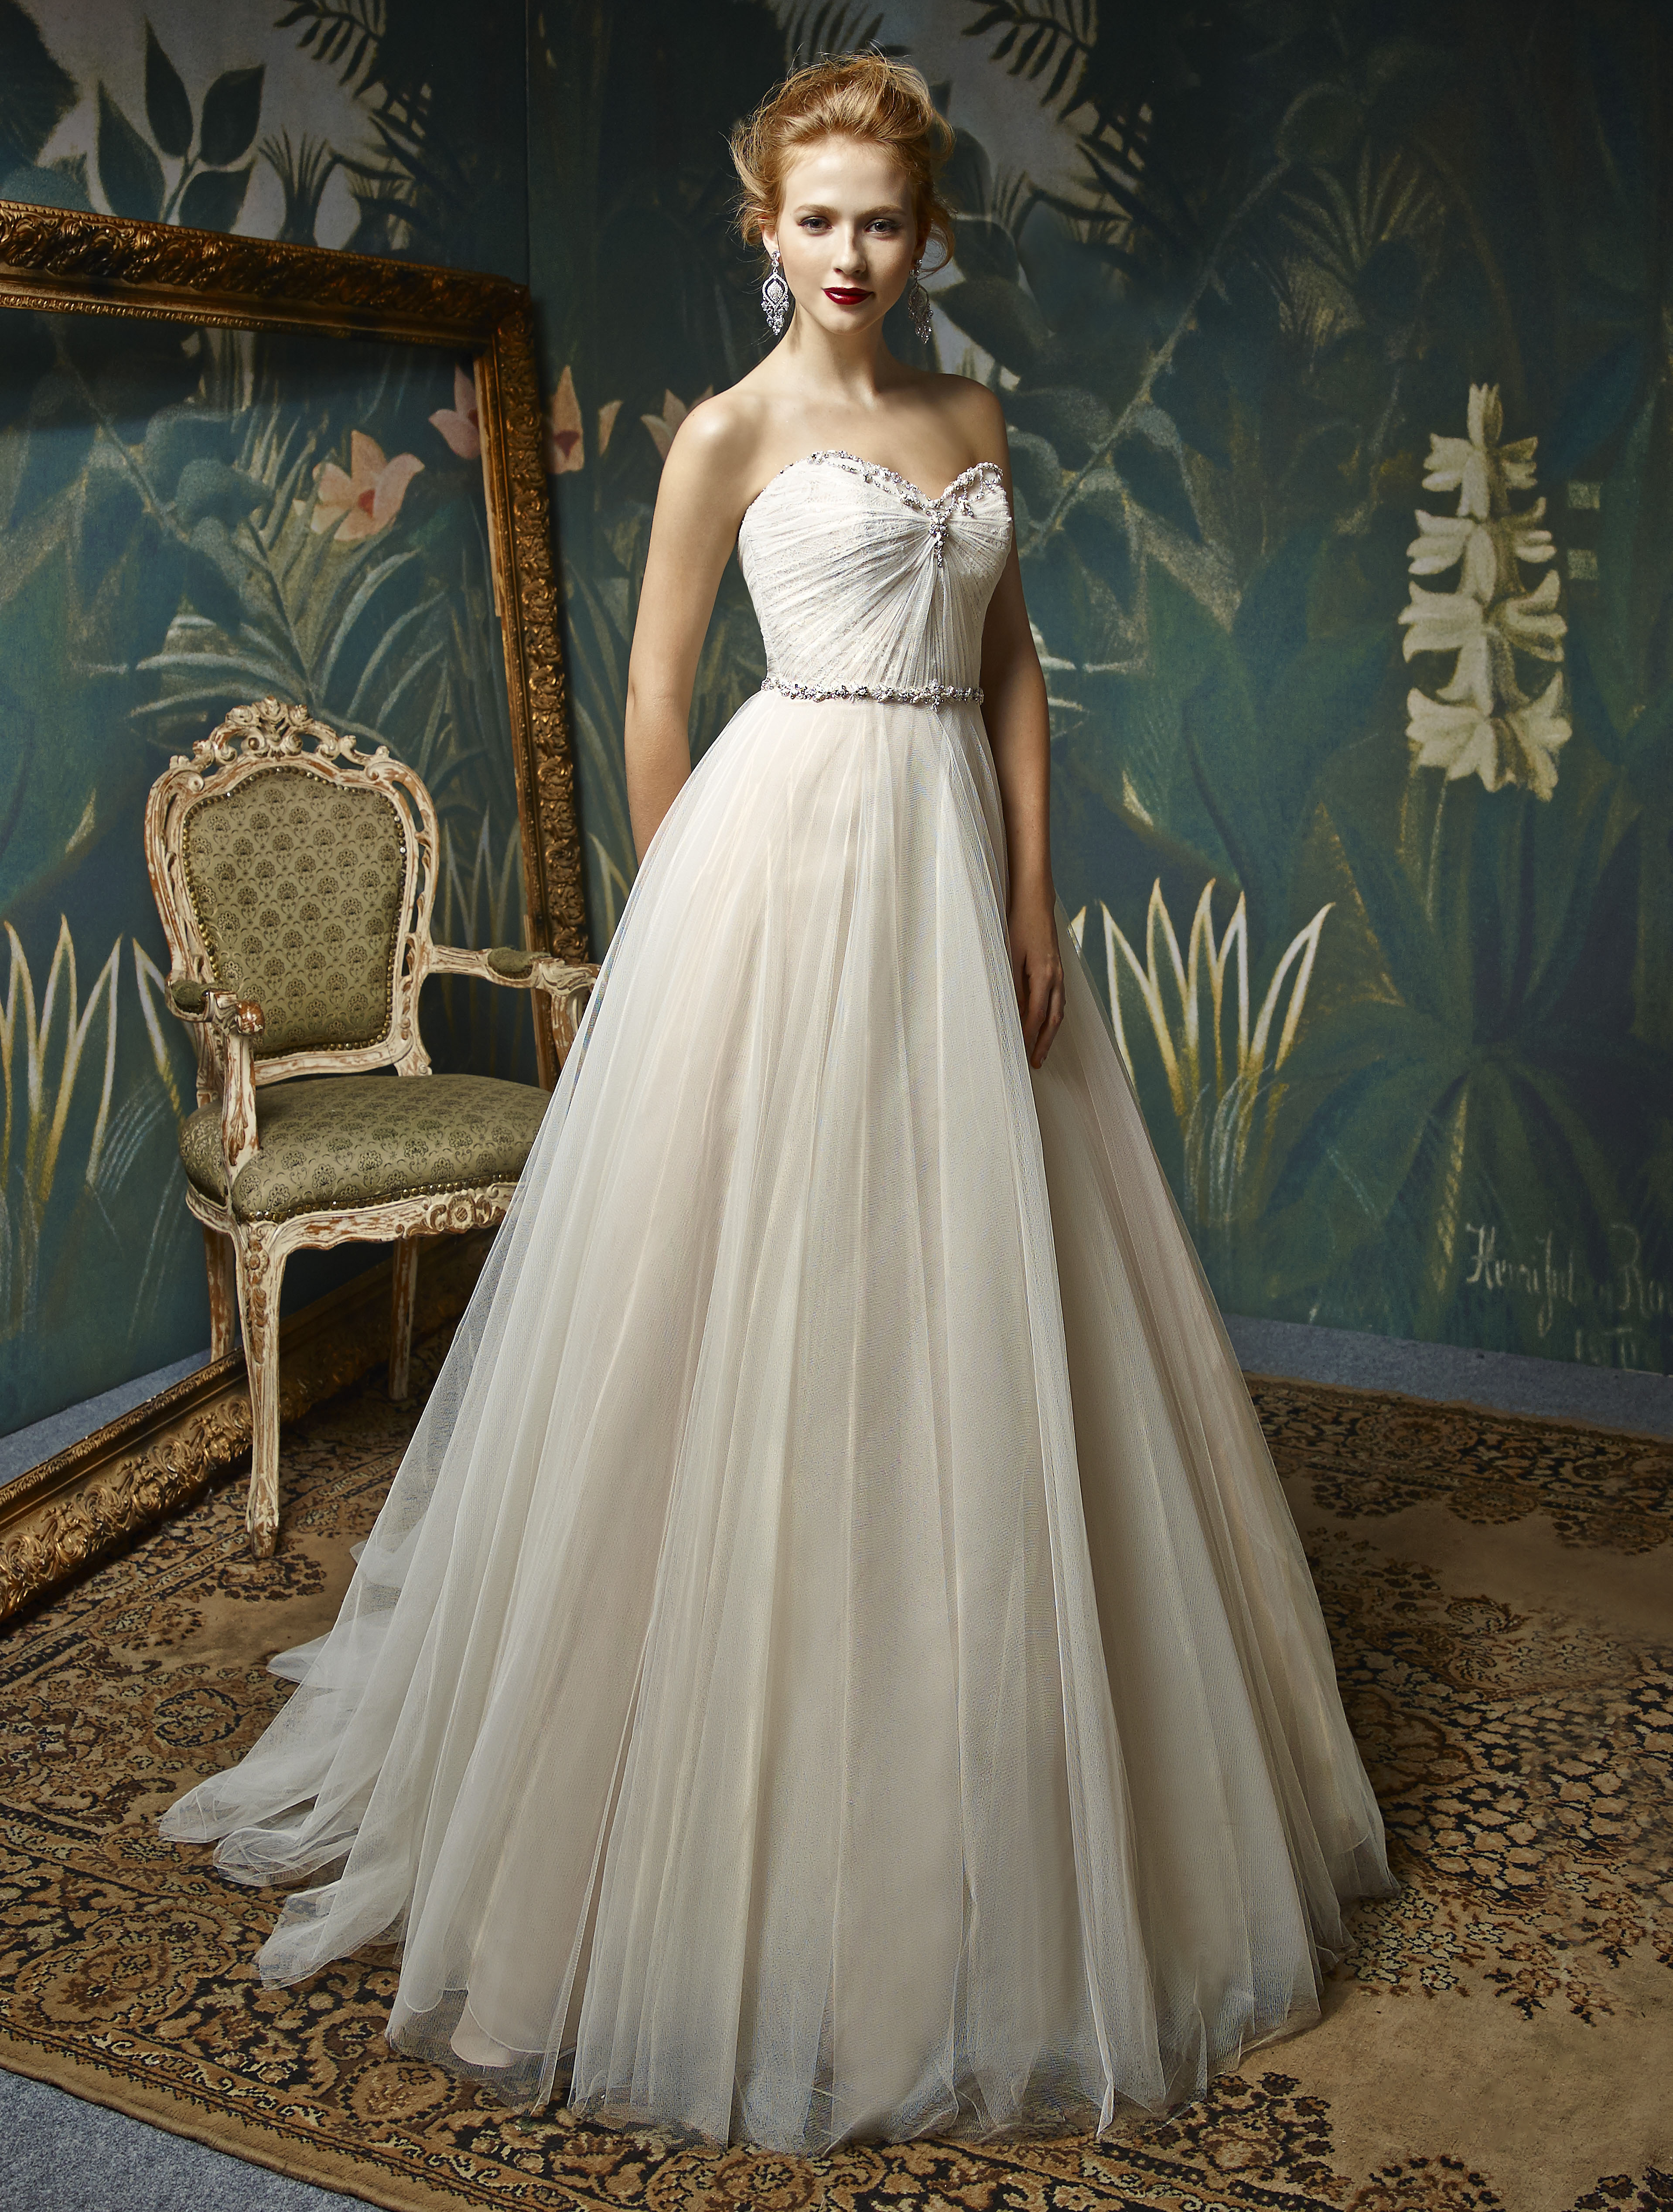 Enzoani Wedding gown. A ine bridal gown